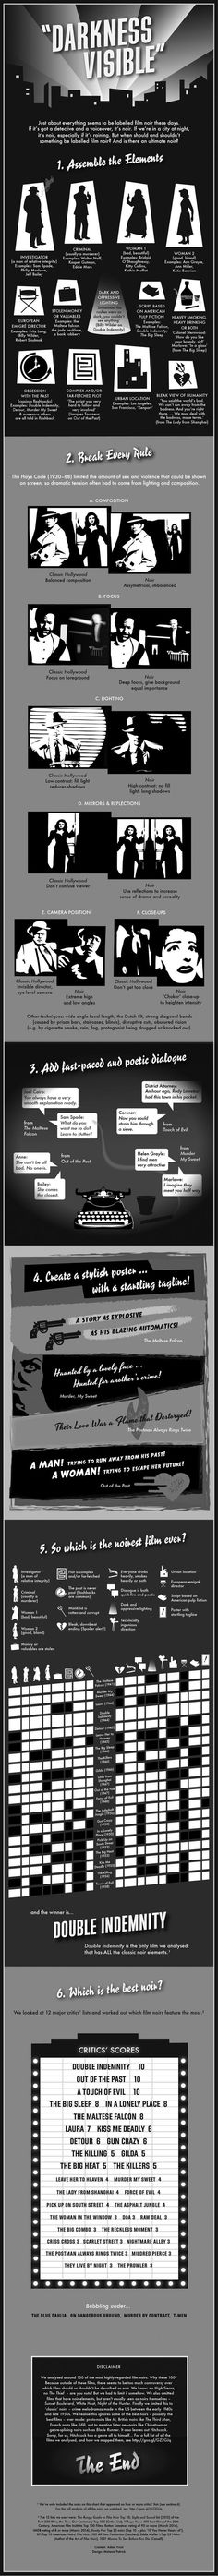 The Noir-est of All the Film Noir Flicks | Mental Floss Noir. Noir. NOIR